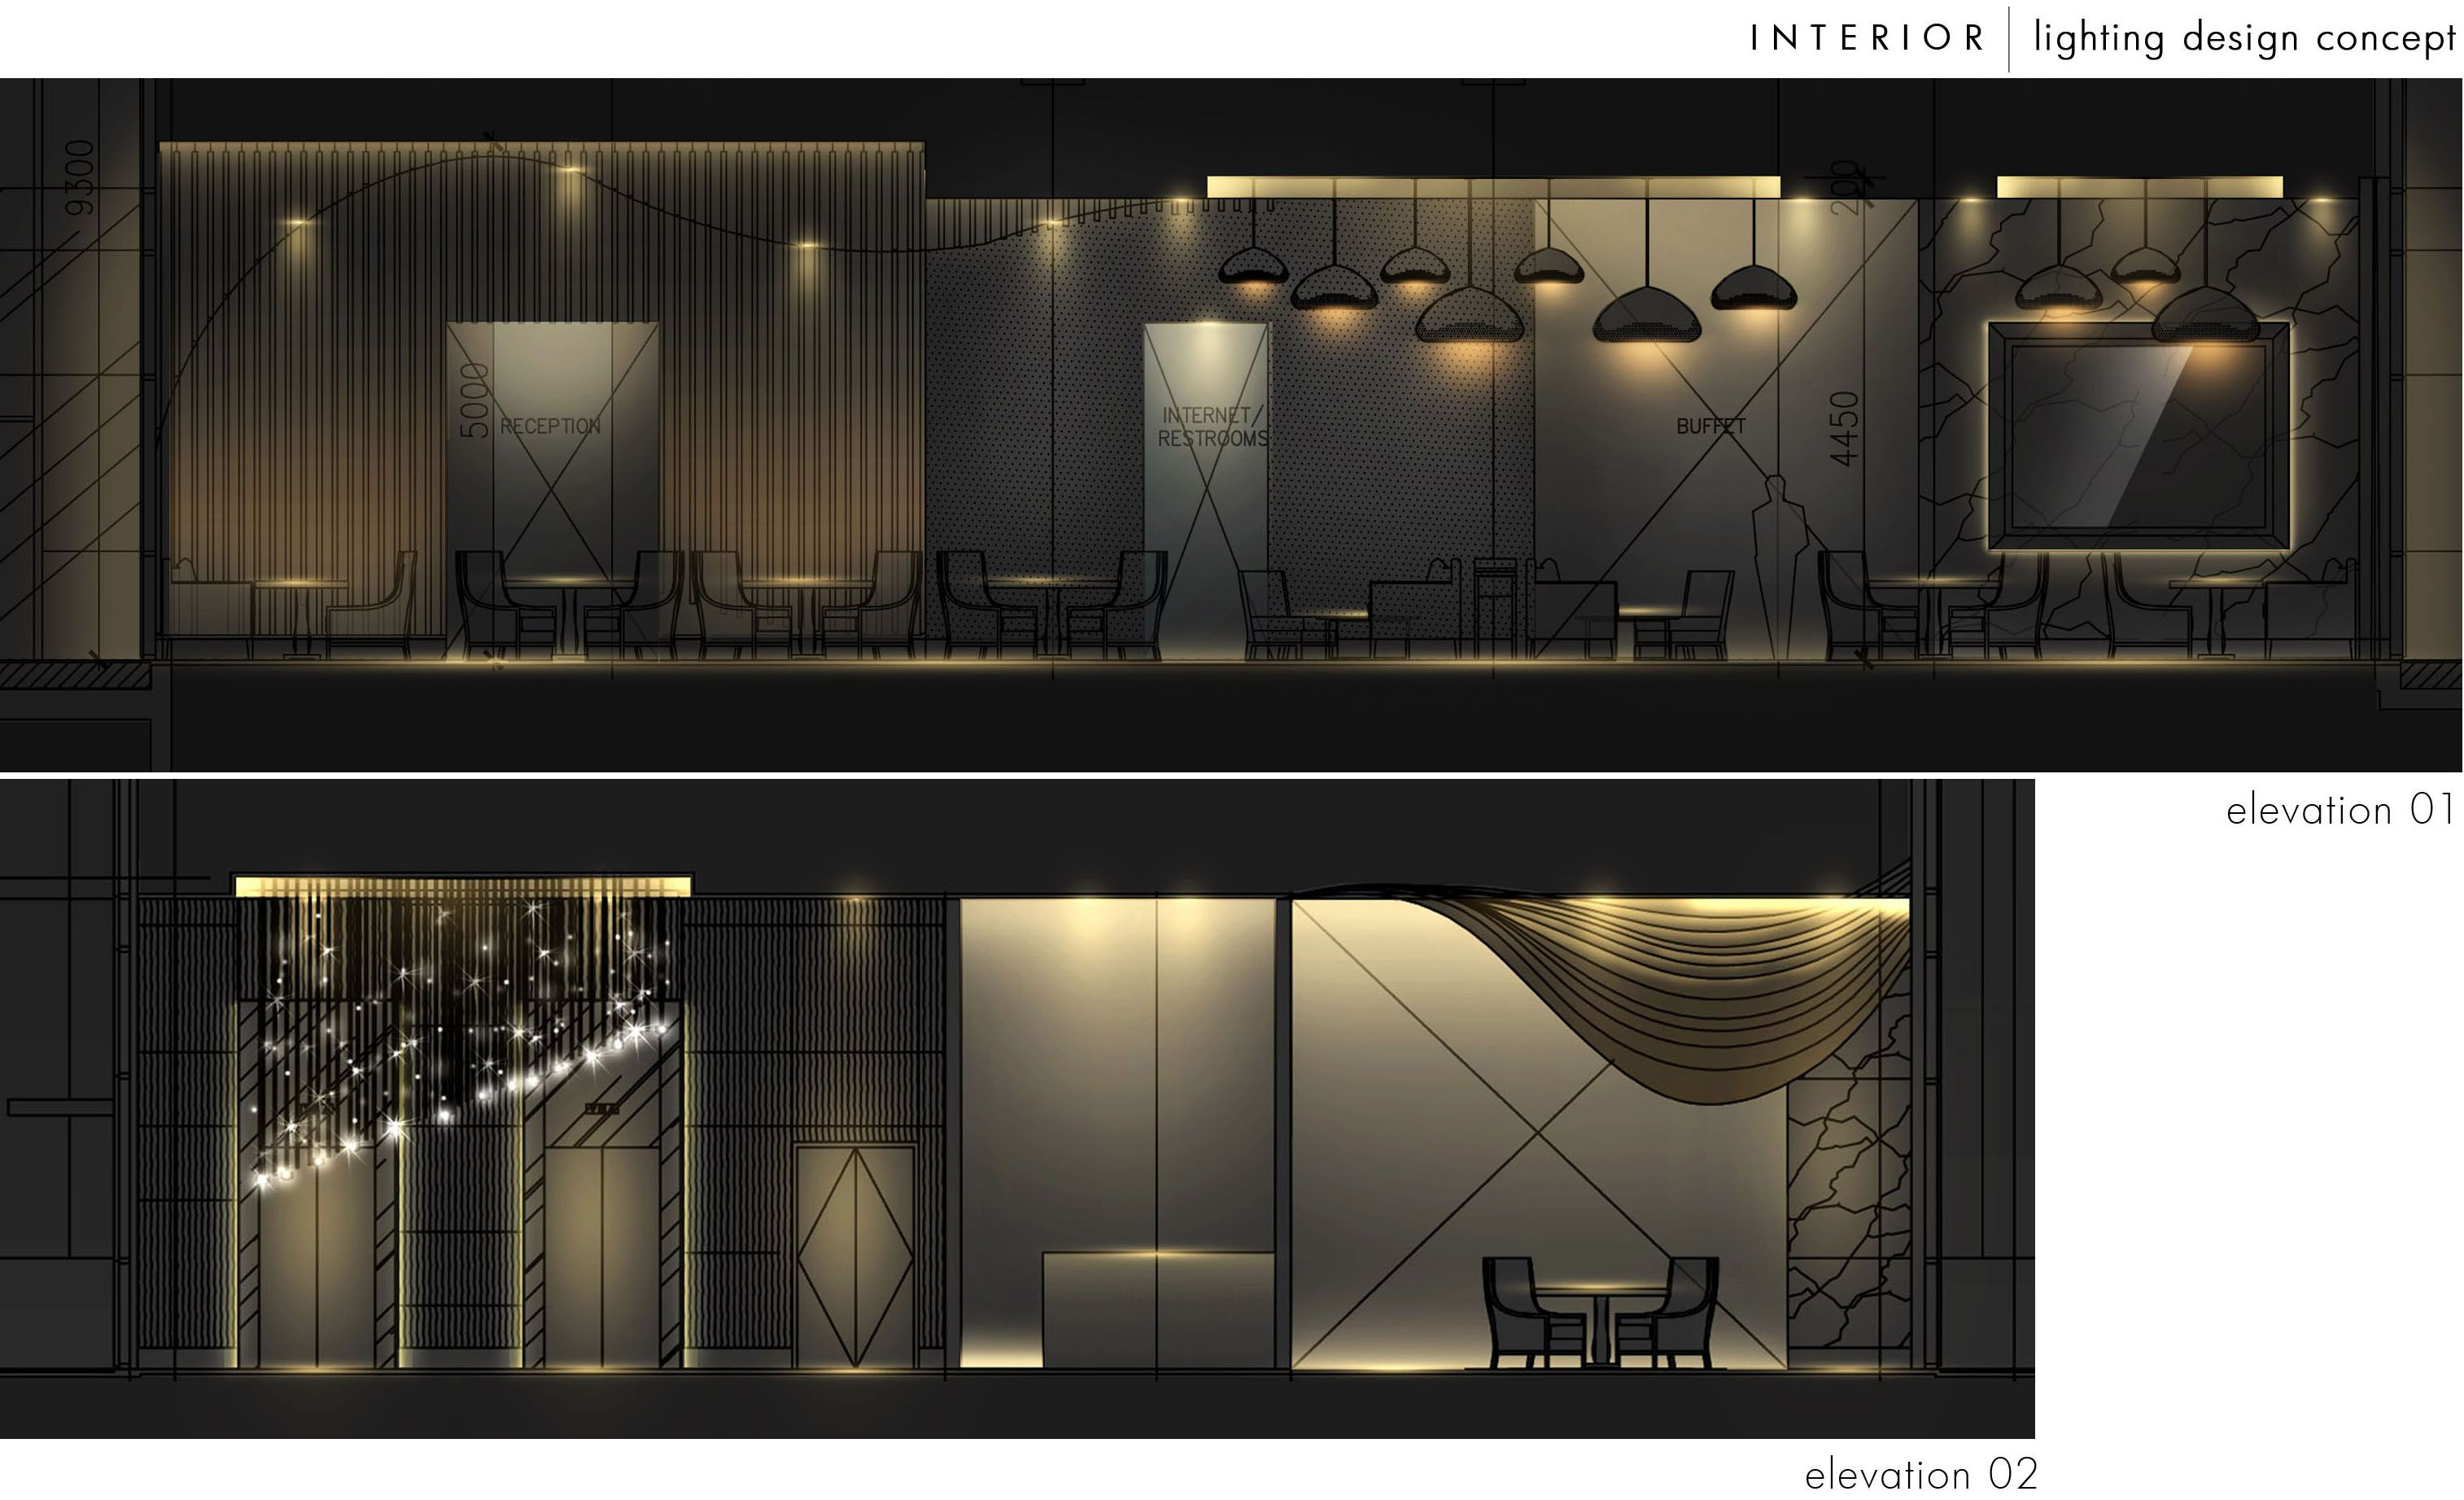 Interior lighting design by steven kurniawan at coroflot for Interior lighting design